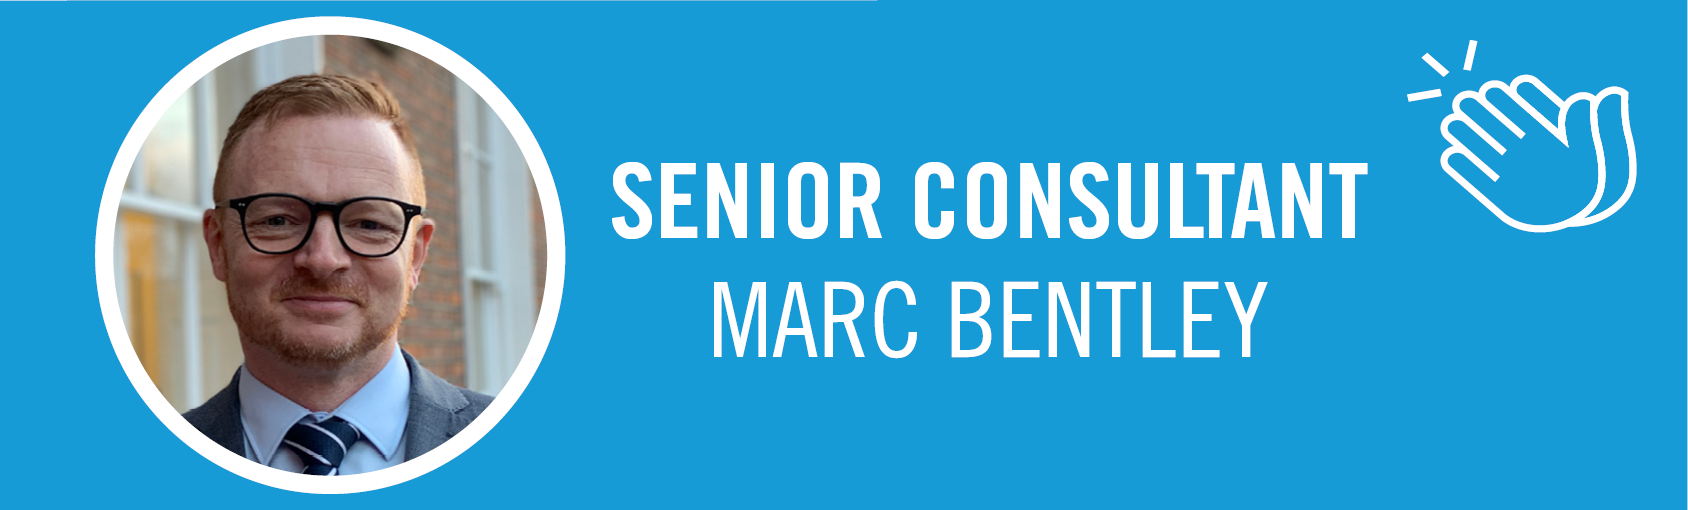 Senior Consultant  - Marc Bentley